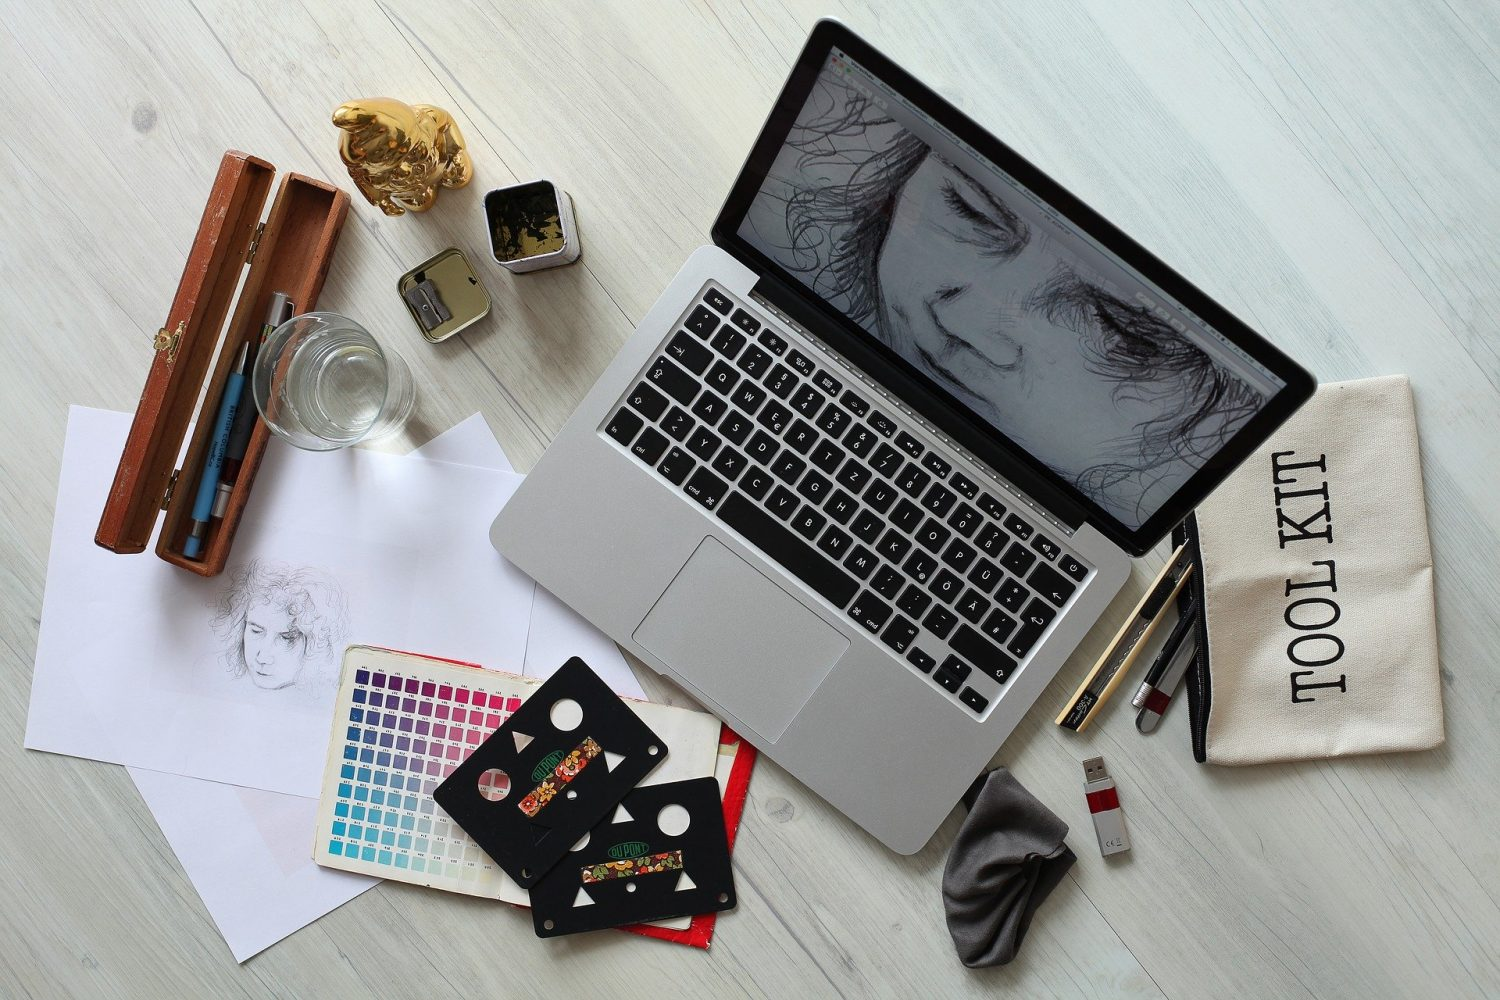 free graphic design tools for beginners